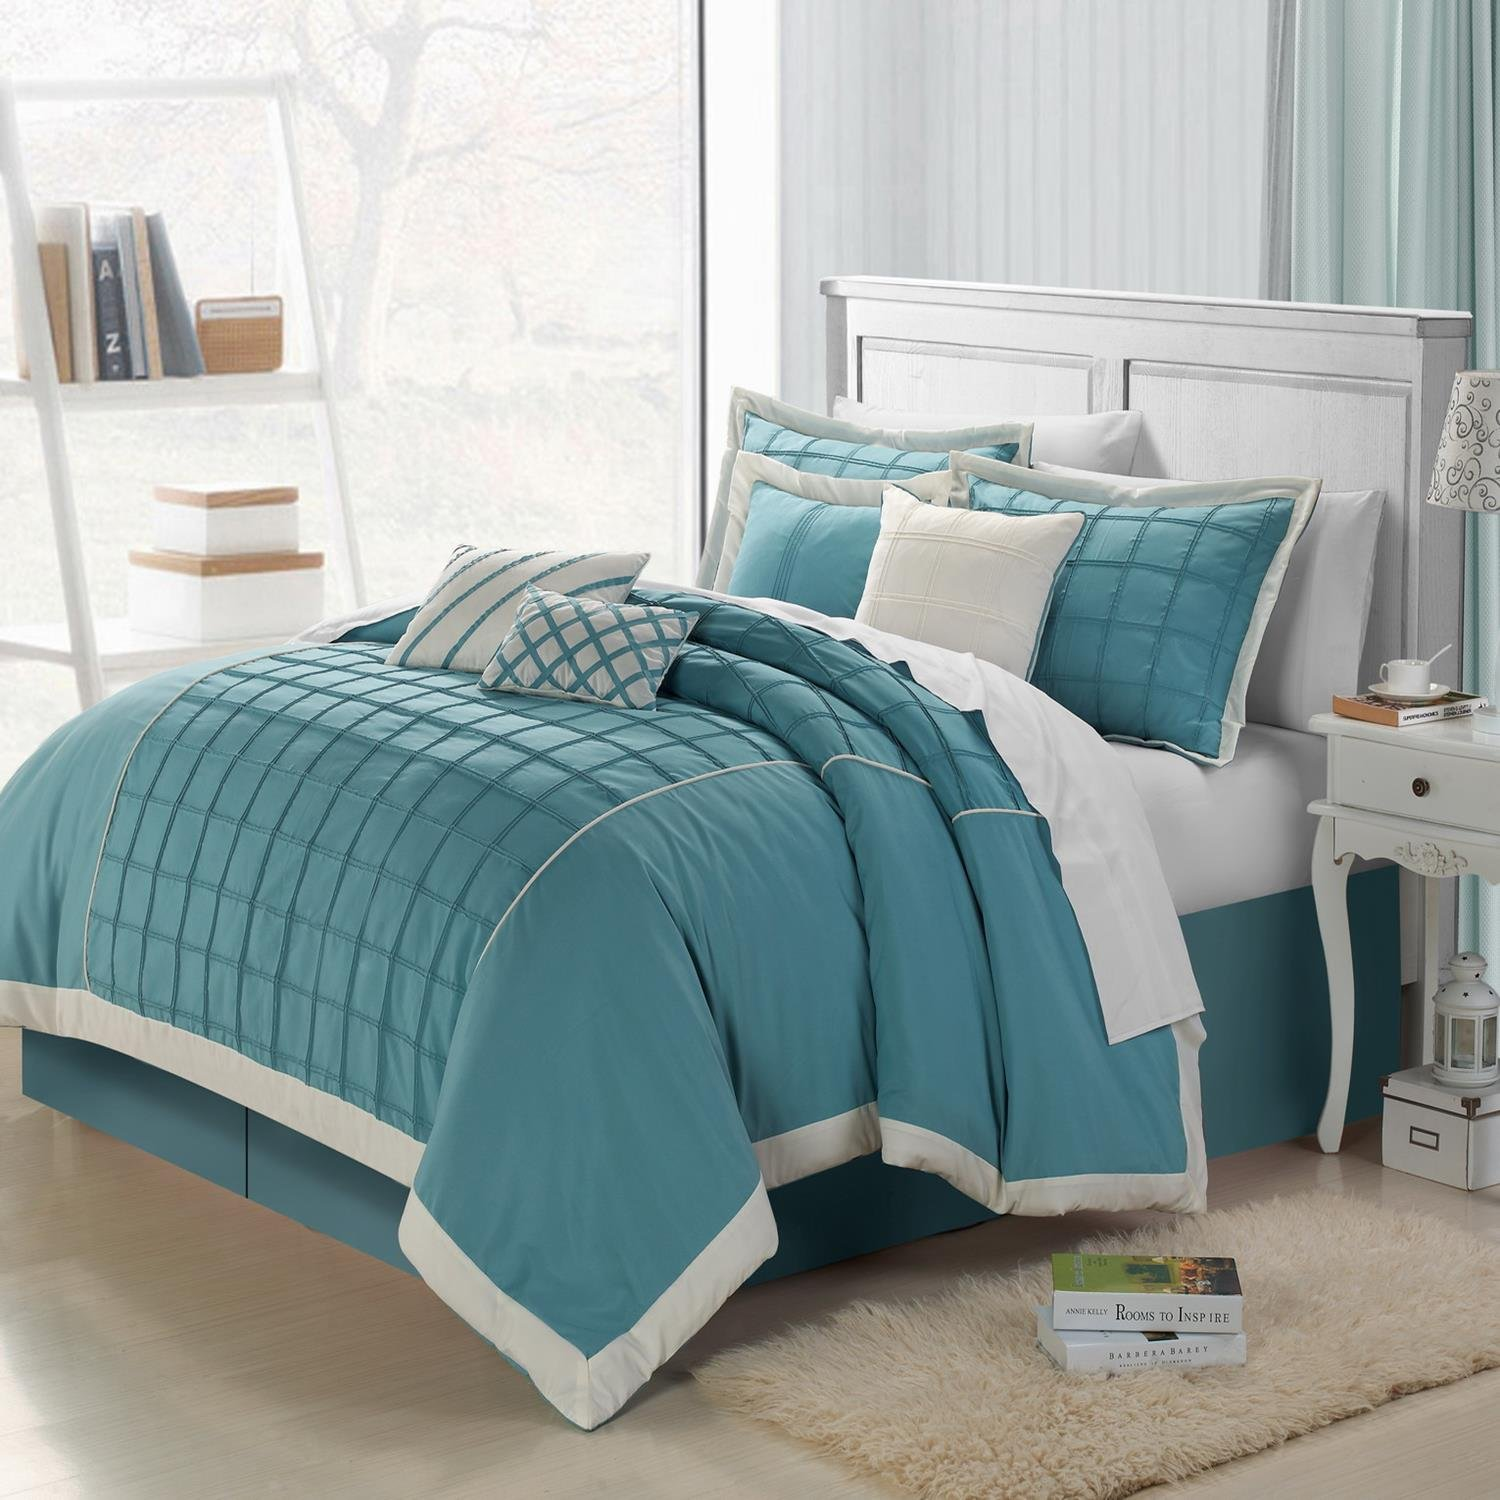 Aqua Bedspread King Images